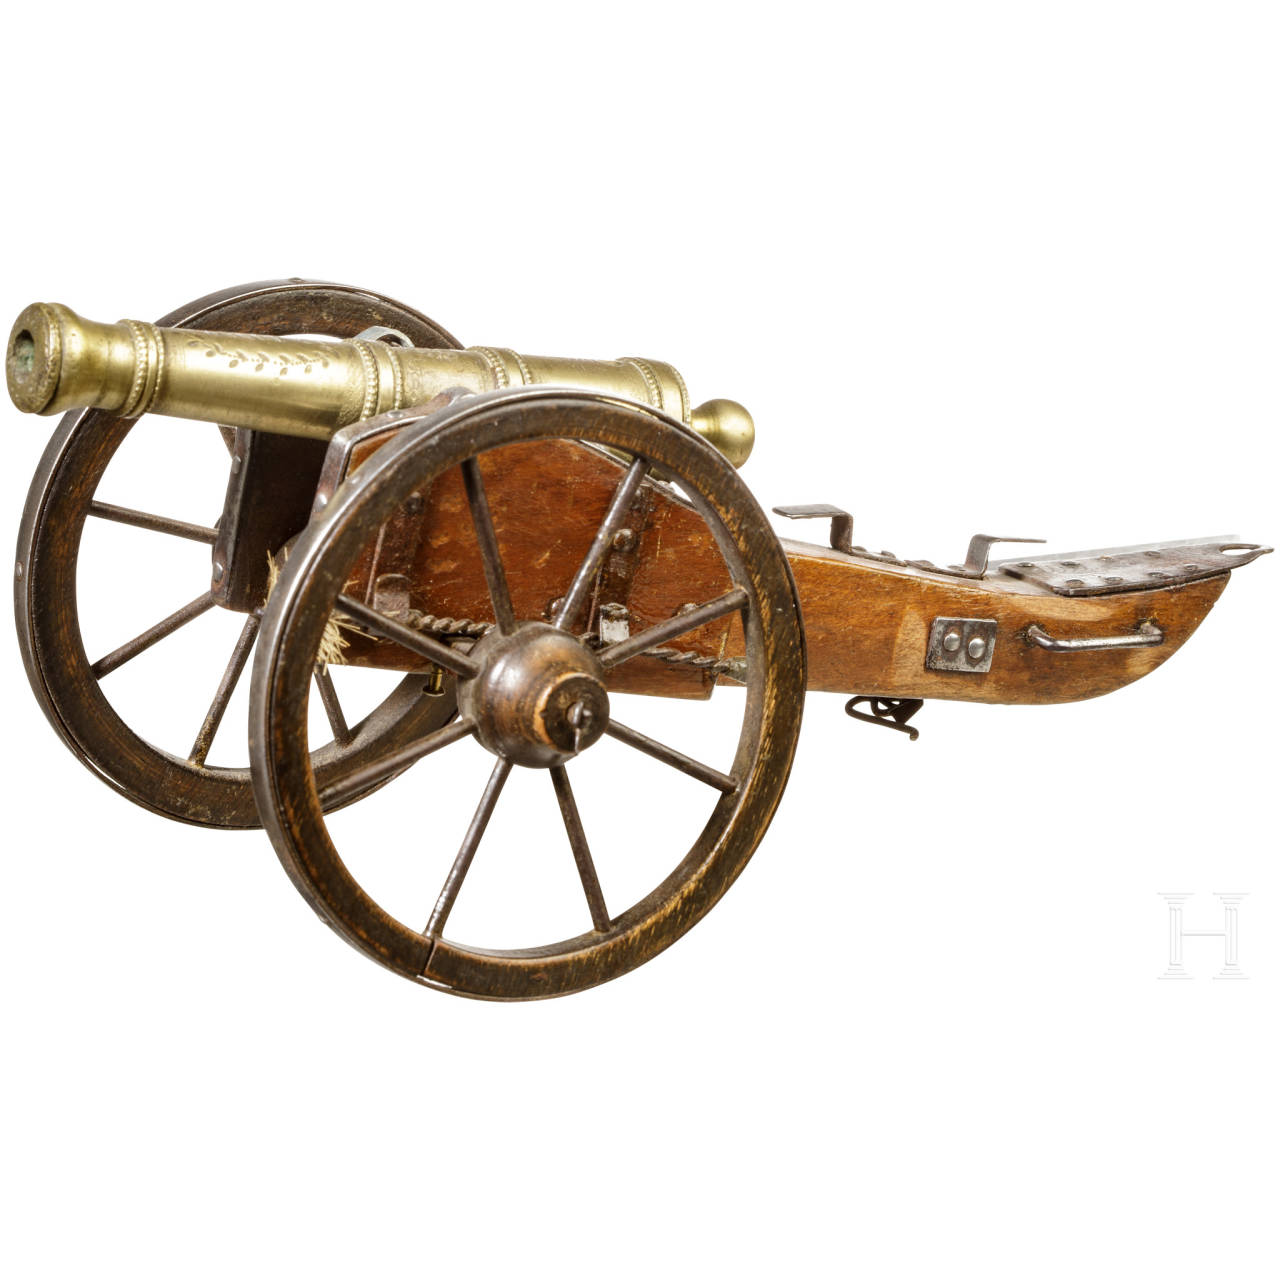 A model cannon, French, 19th century